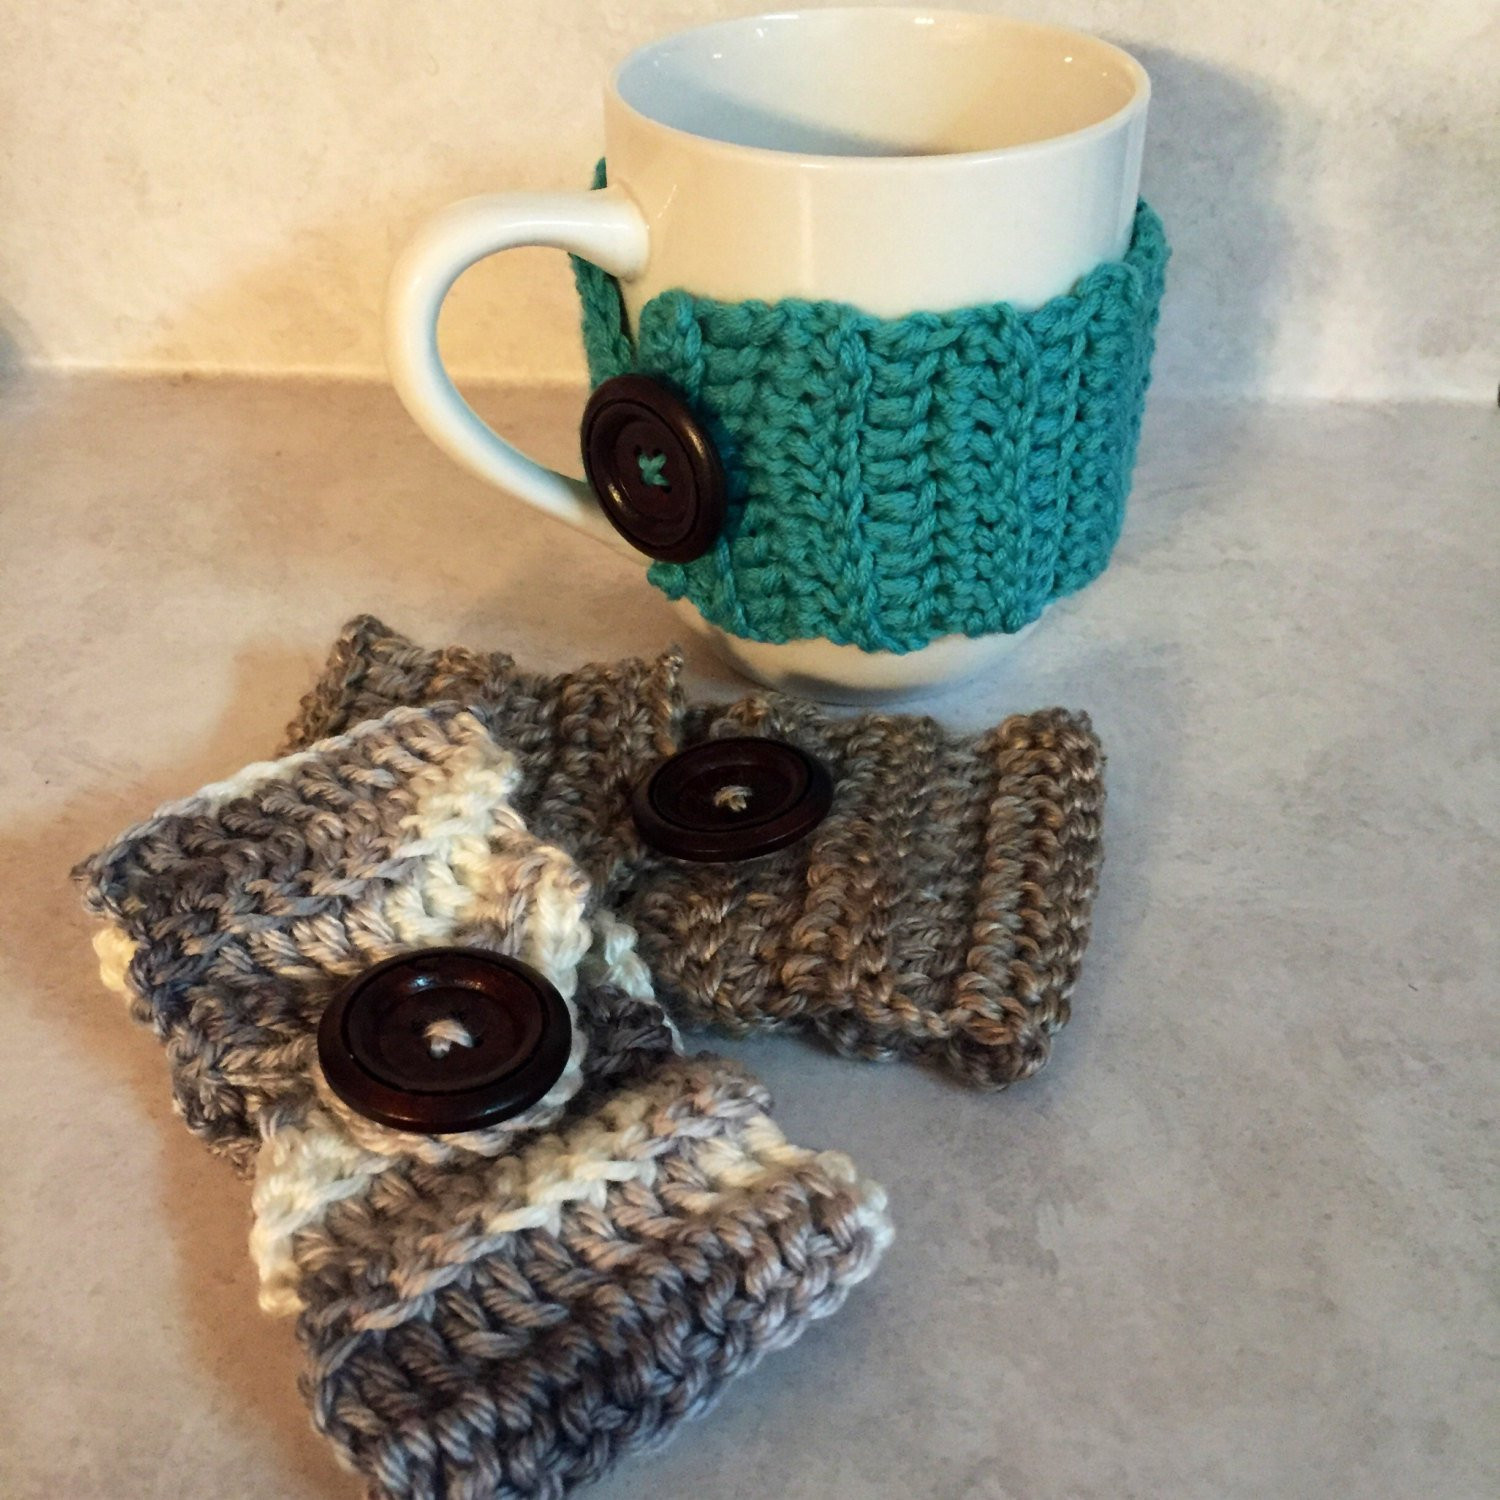 Crochet Coffee Cup Cozy New Crochet Tea Cozy Coffee Cup Sleeve Coffee Sleeve Mug Cozy Of Crochet Coffee Cup Cozy Inspirational Crochet Coffee Cup Cozy Pattern Pdf Download Coffee Cup Cozy